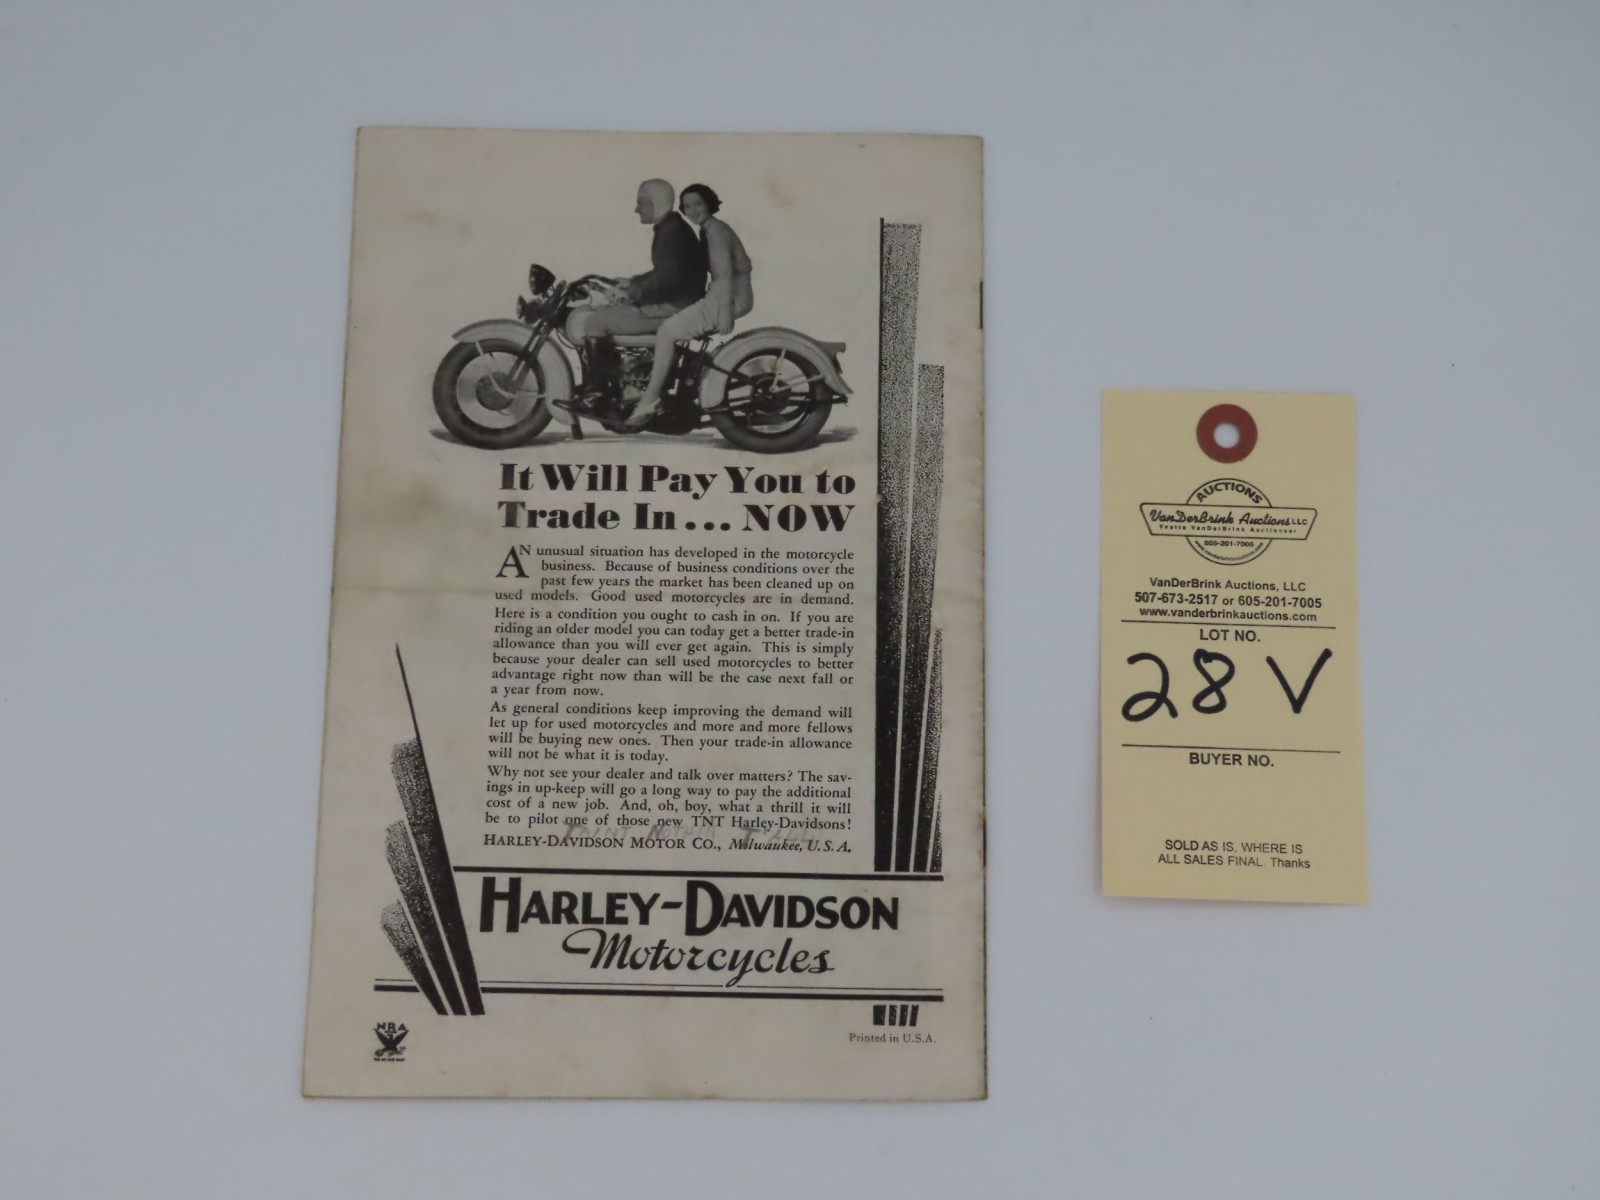 The Harley-Davidson Enthusiast - Image 3